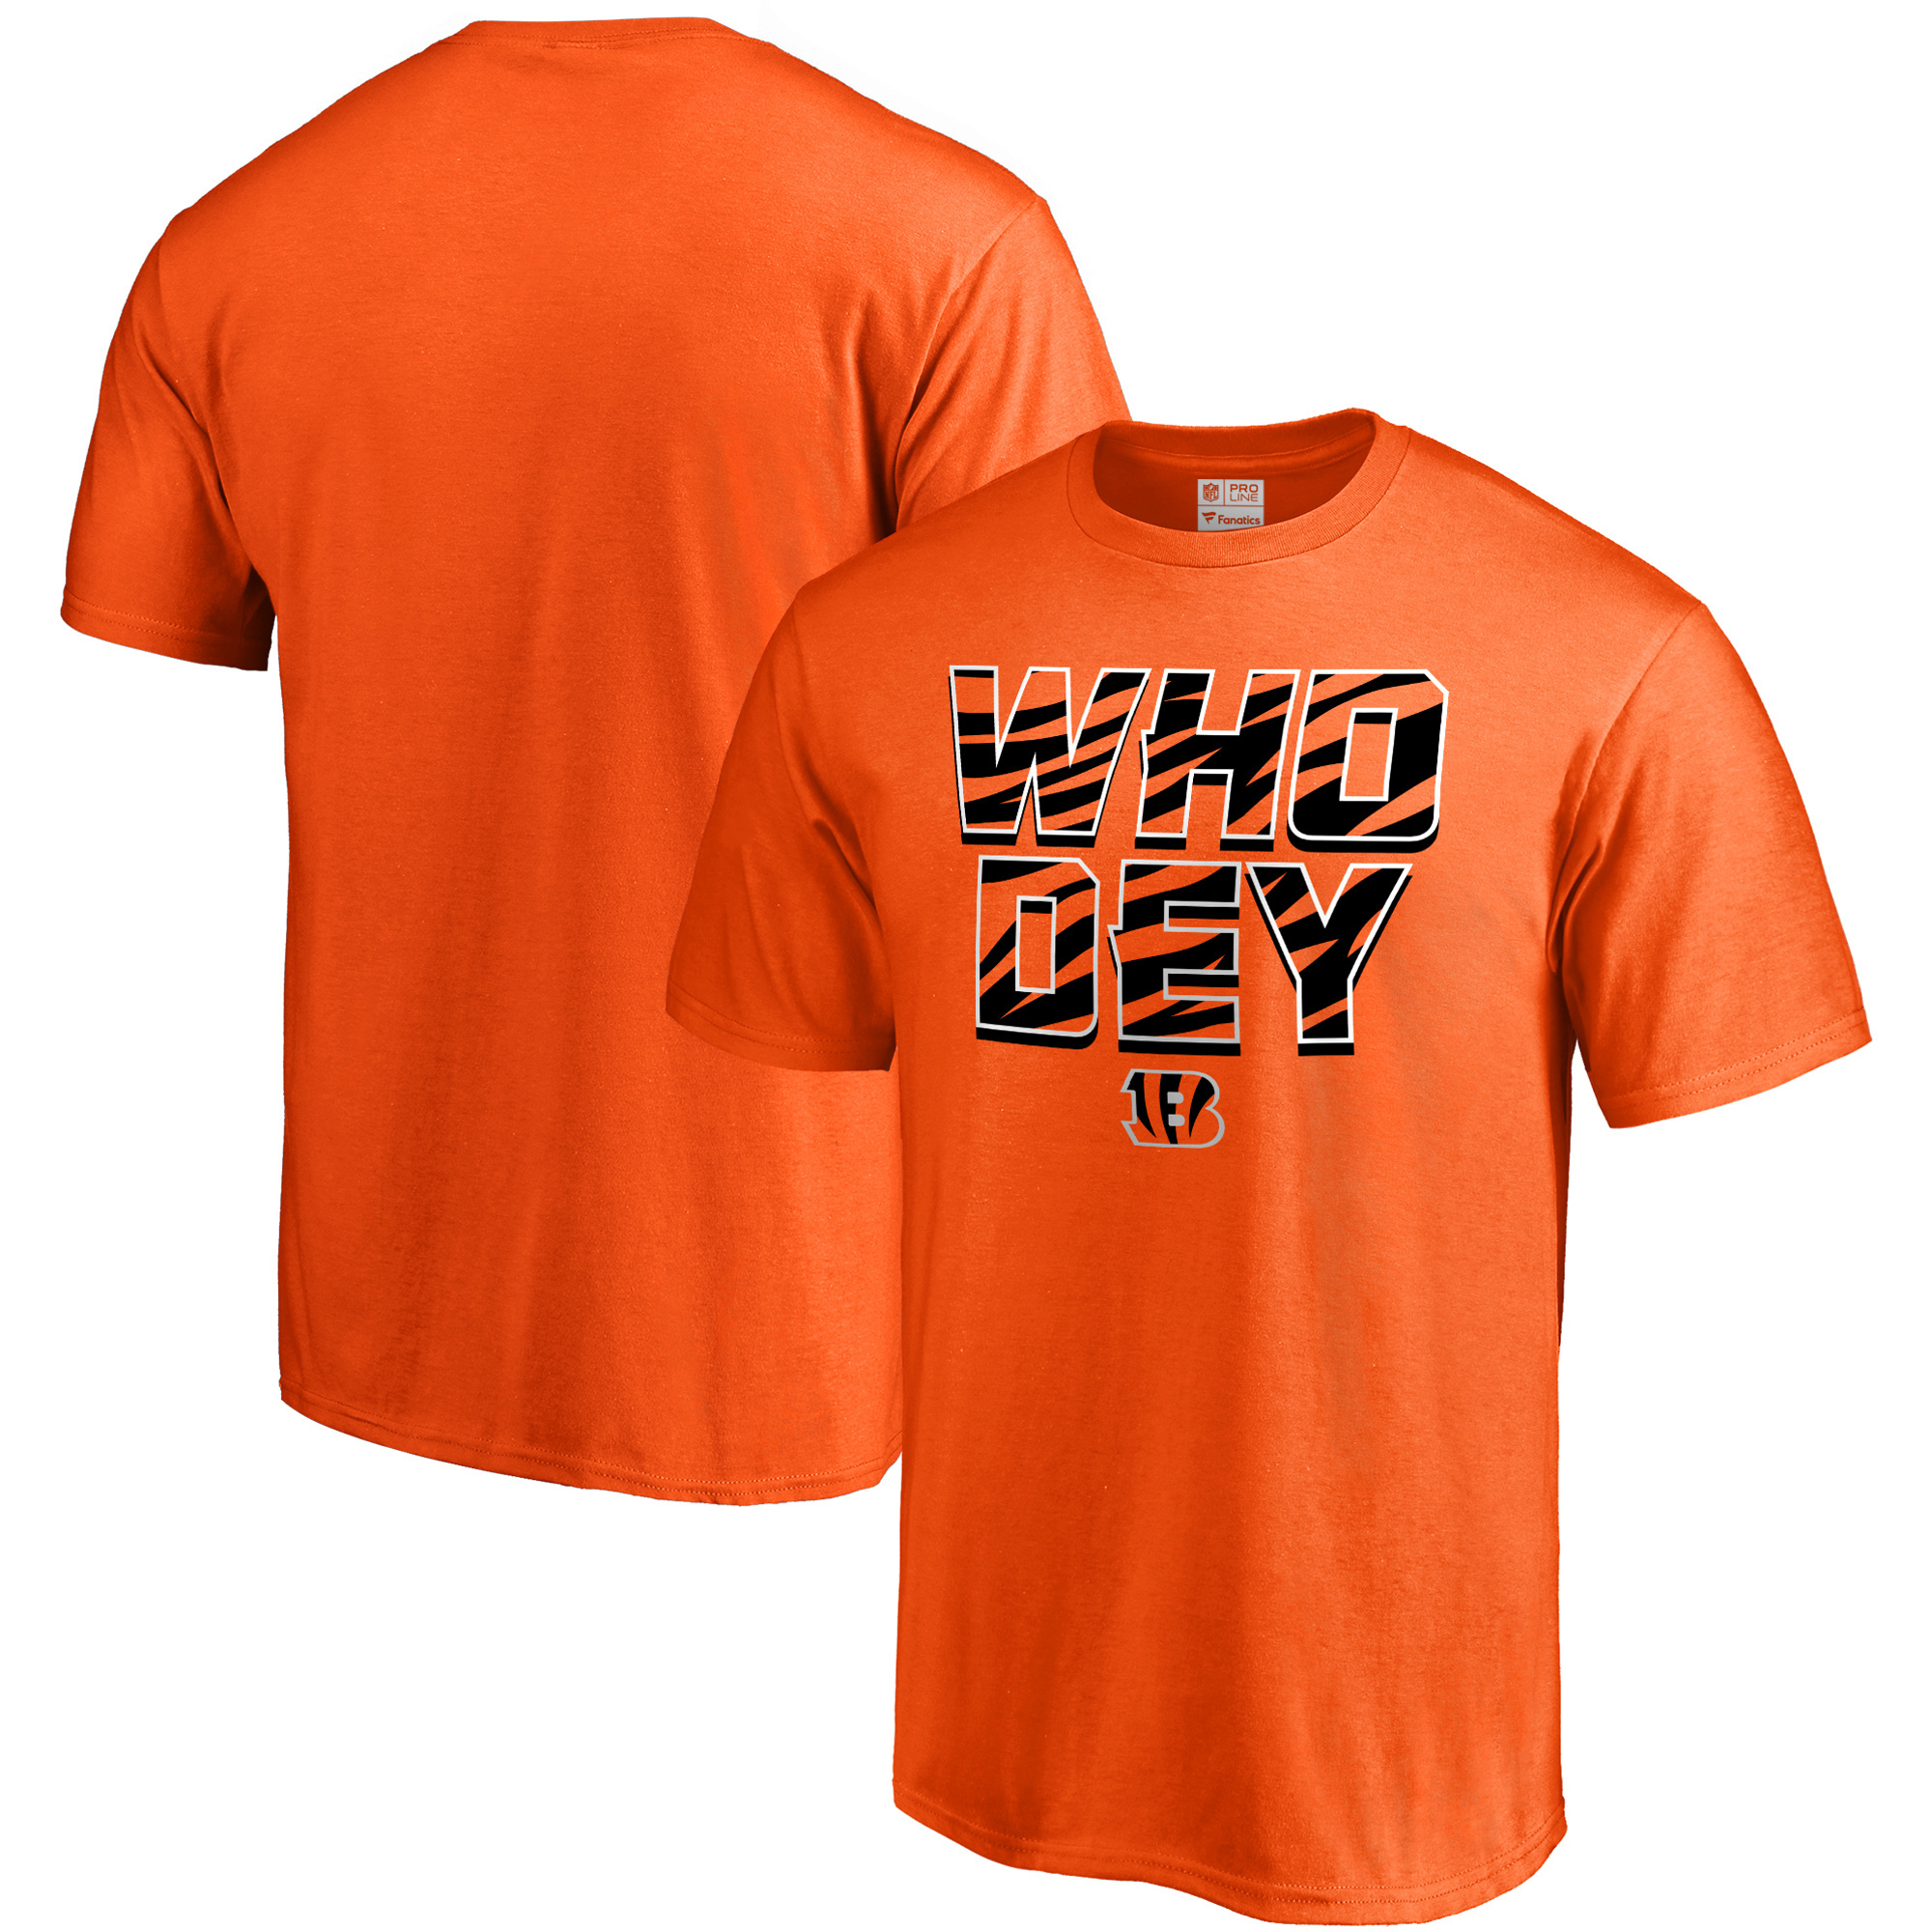 Cincinnati Bengals NFL Pro Line Hometown Collection T-Shirt - Orange